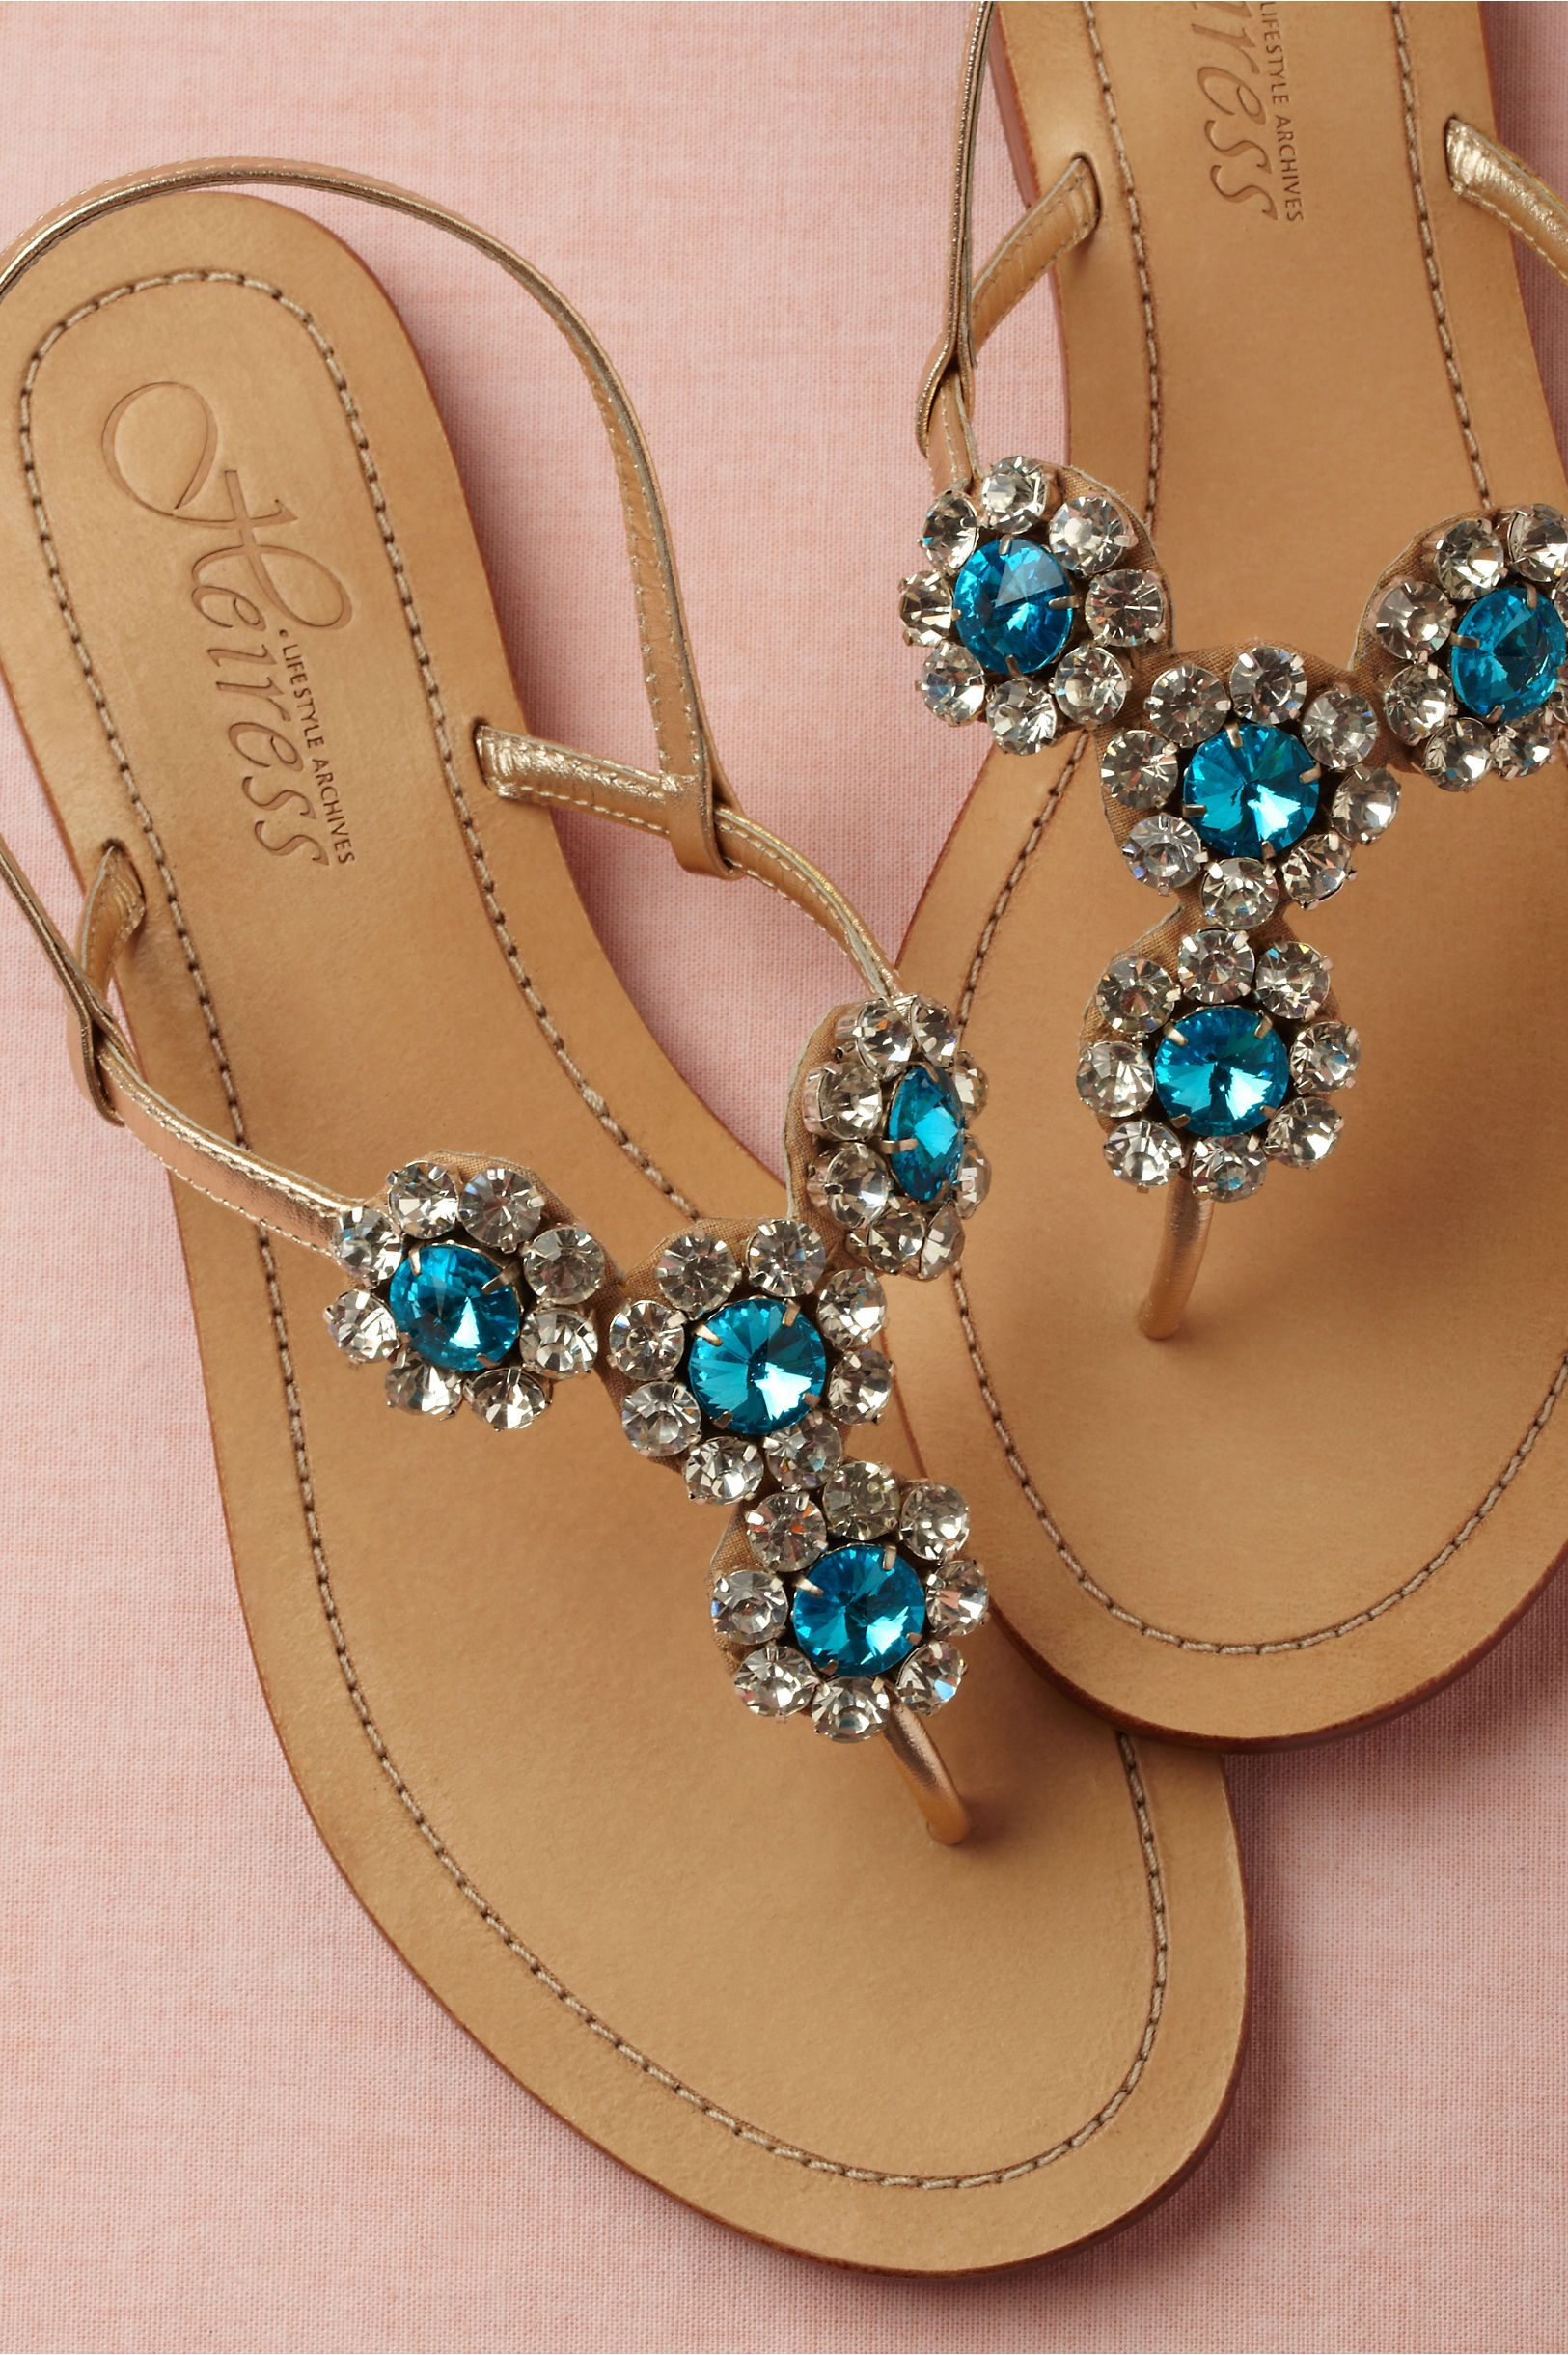 ce586abf28f043 Jewels sandals. Maroma Sandals - Radiant blue flowers on a simple sandal  silhouette.